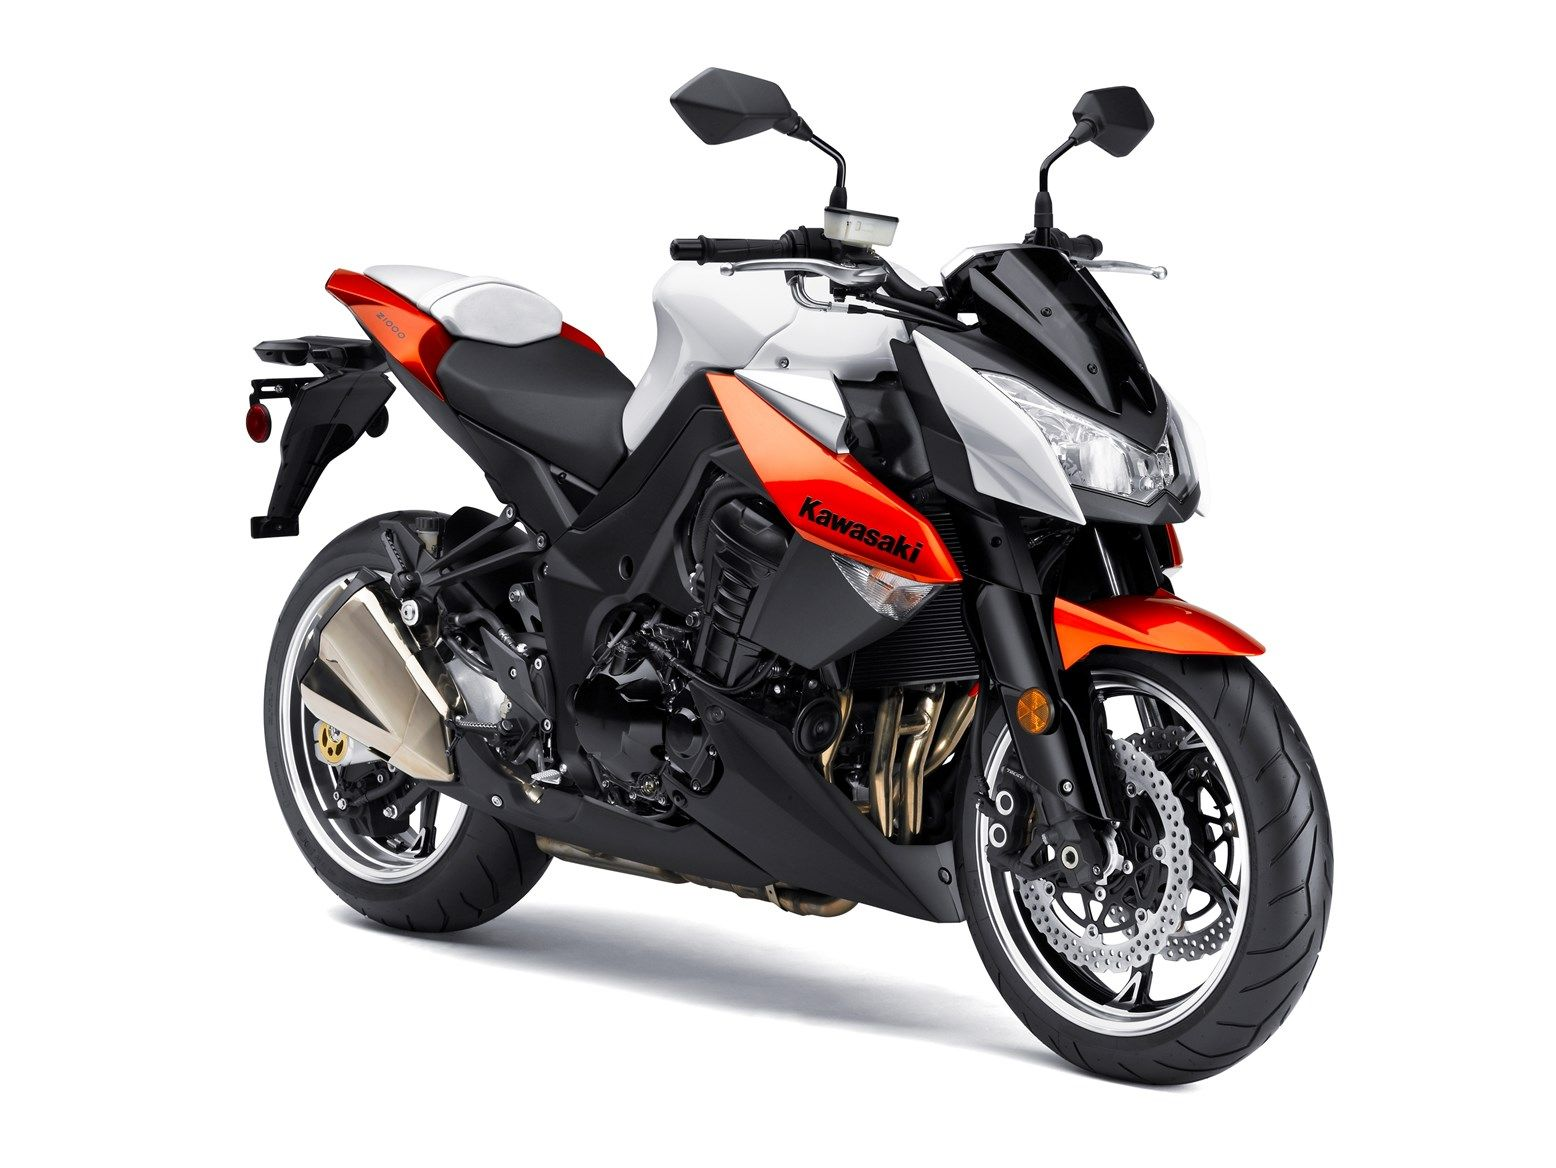 New Kawasaki Z1000 Gets New Engine And Chassis Con Imagenes